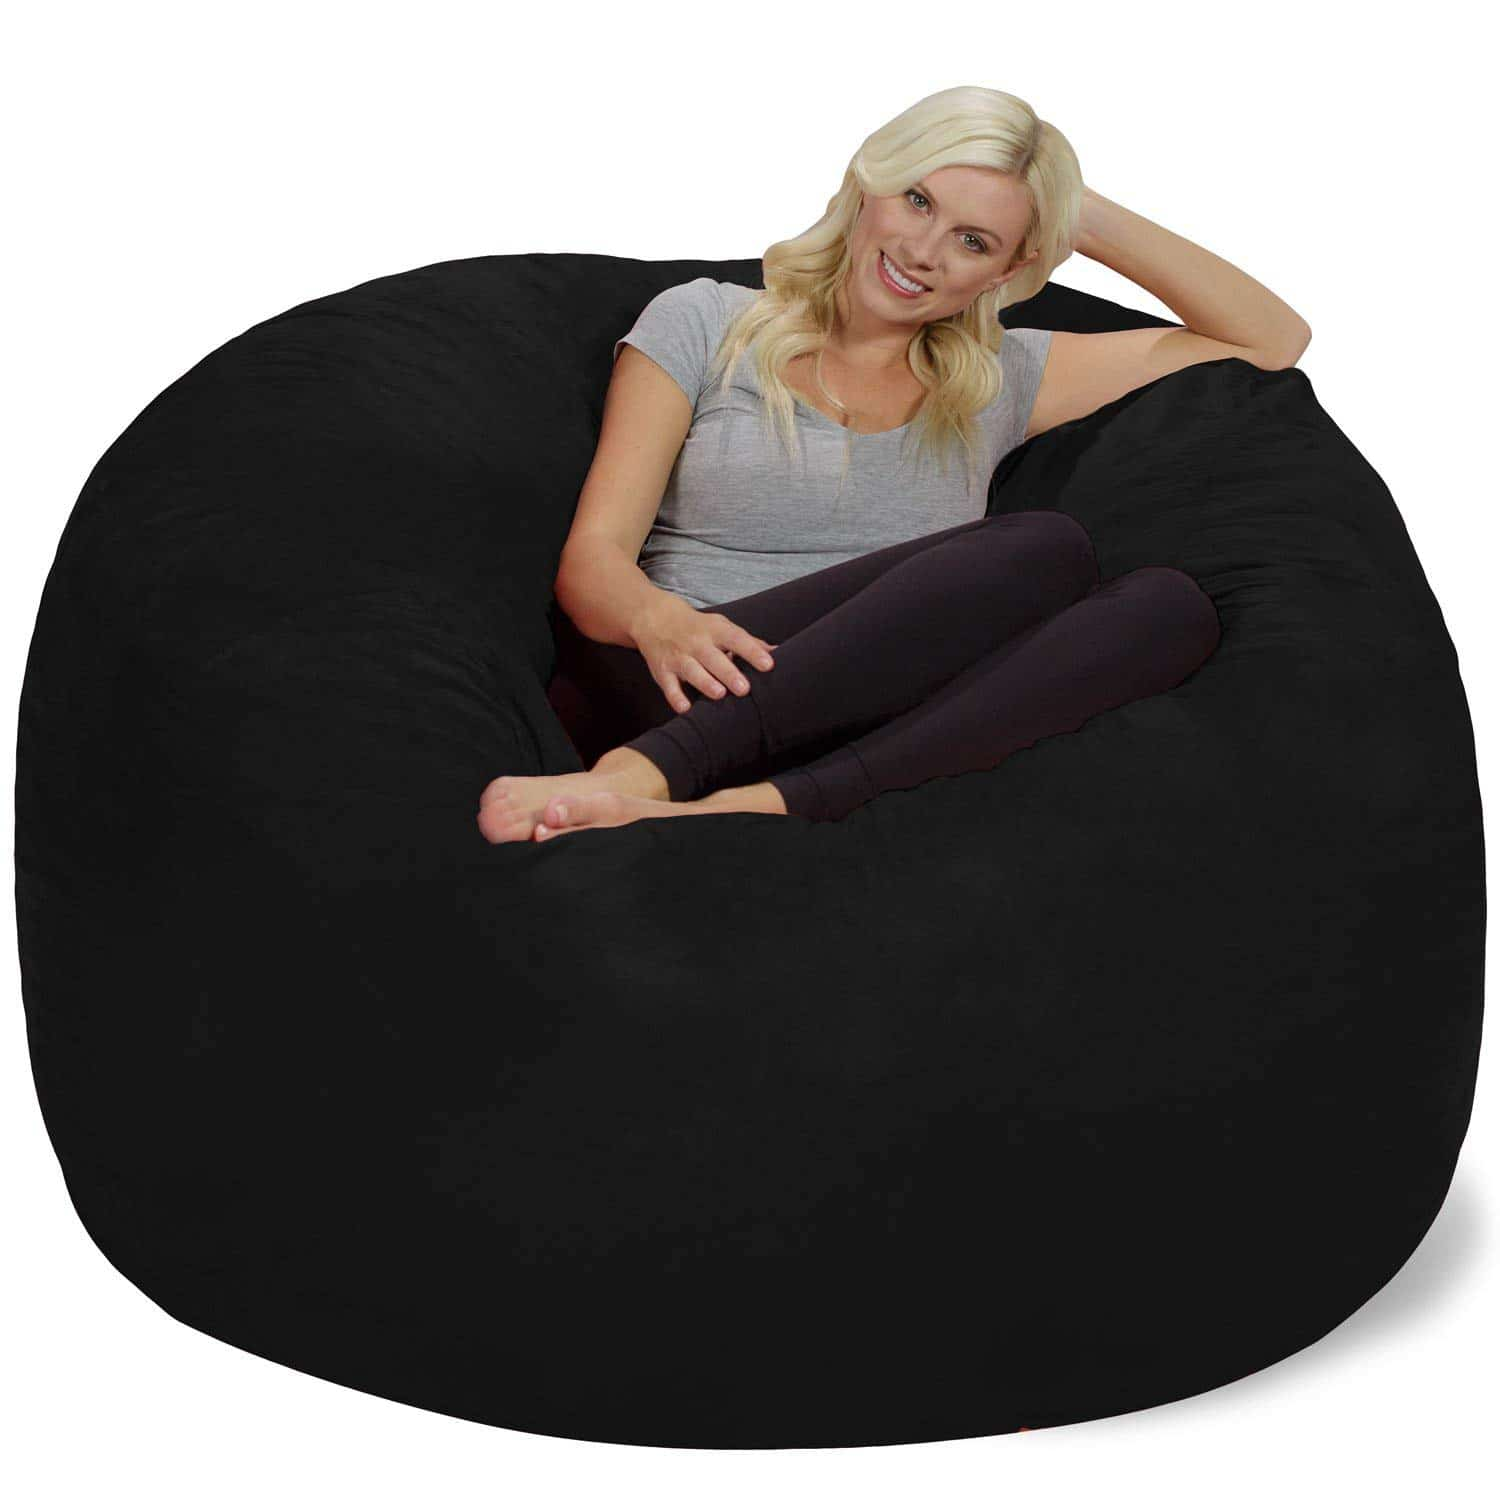 best bean bag chairs top 10 bean bag brands and reviews cuddly home advisors. Black Bedroom Furniture Sets. Home Design Ideas